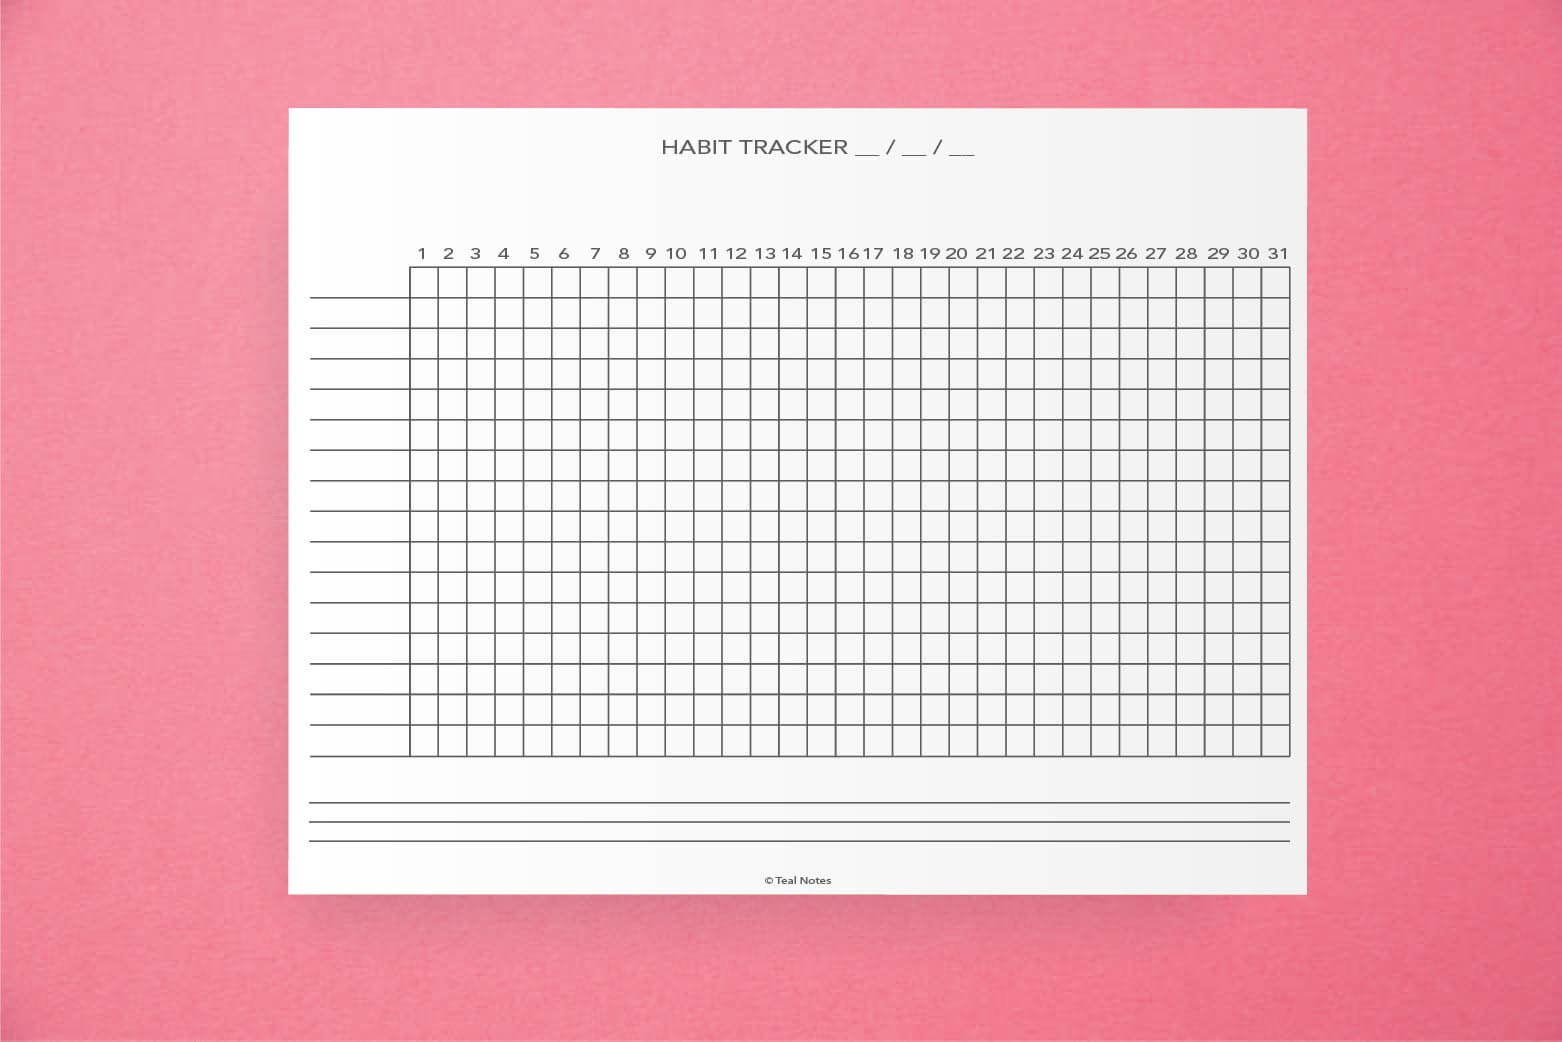 image regarding Daily Habit Tracker Printable called Absolutely free Printable Pattern Tracker PDF: The Greatest Pattern Tracker